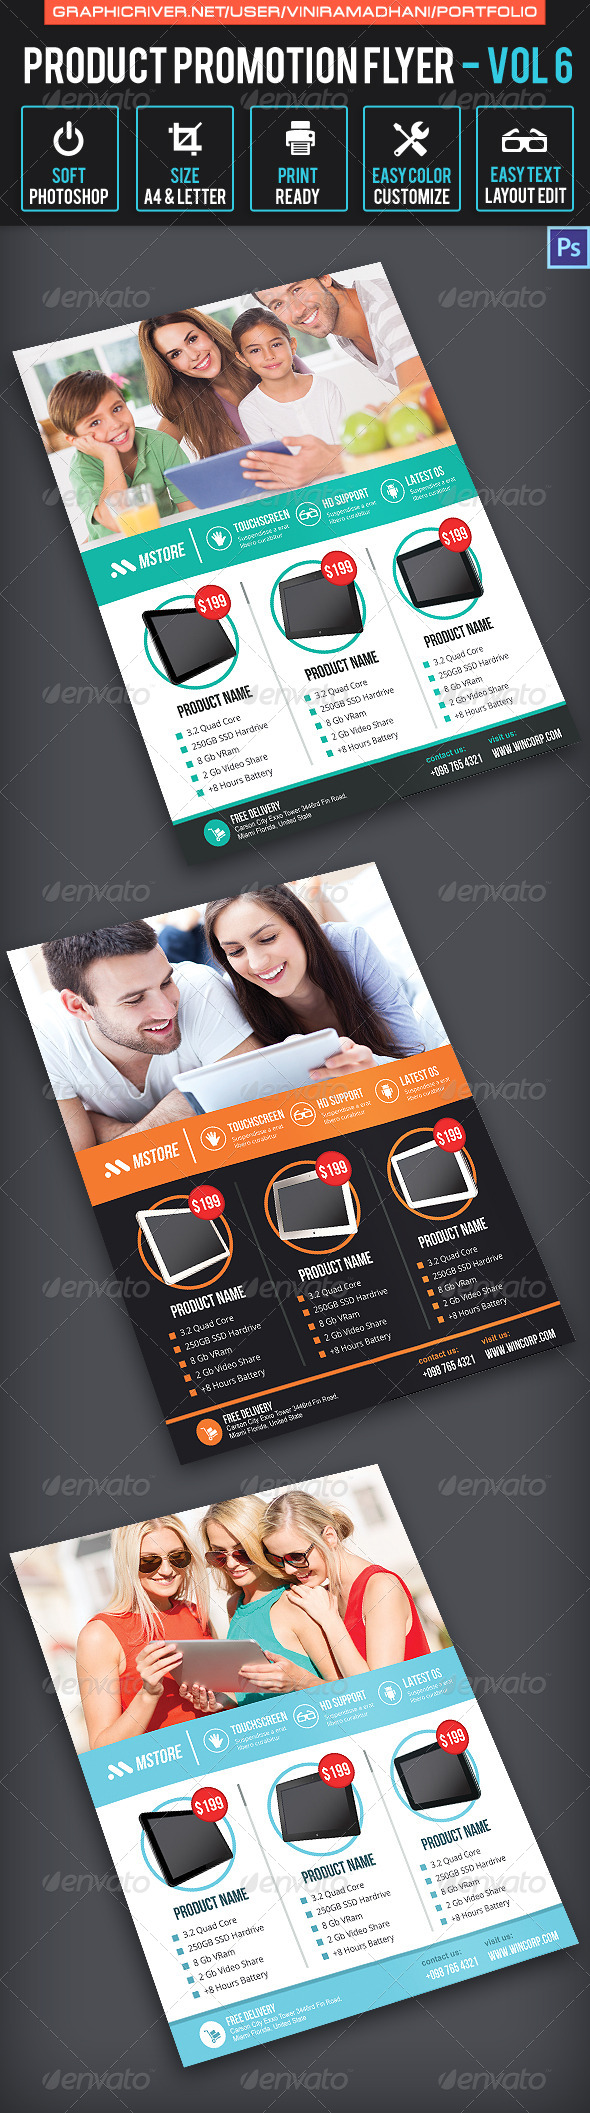 Product Promotion Flyer | Volume 6 - Commerce Flyers